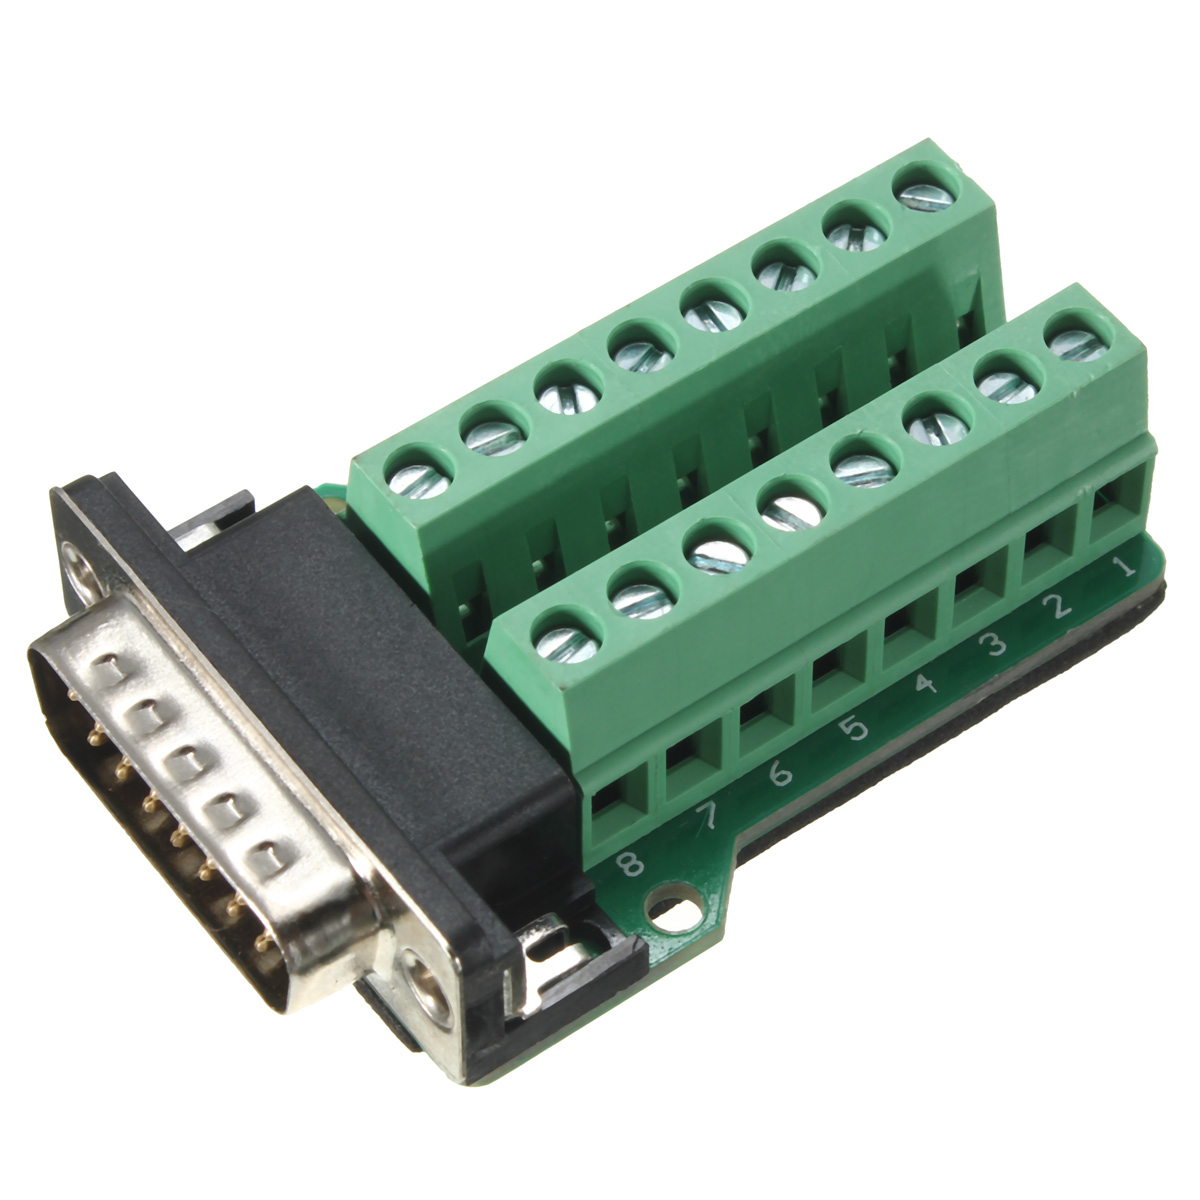 15 Pin D Sub Male Connector Pinout